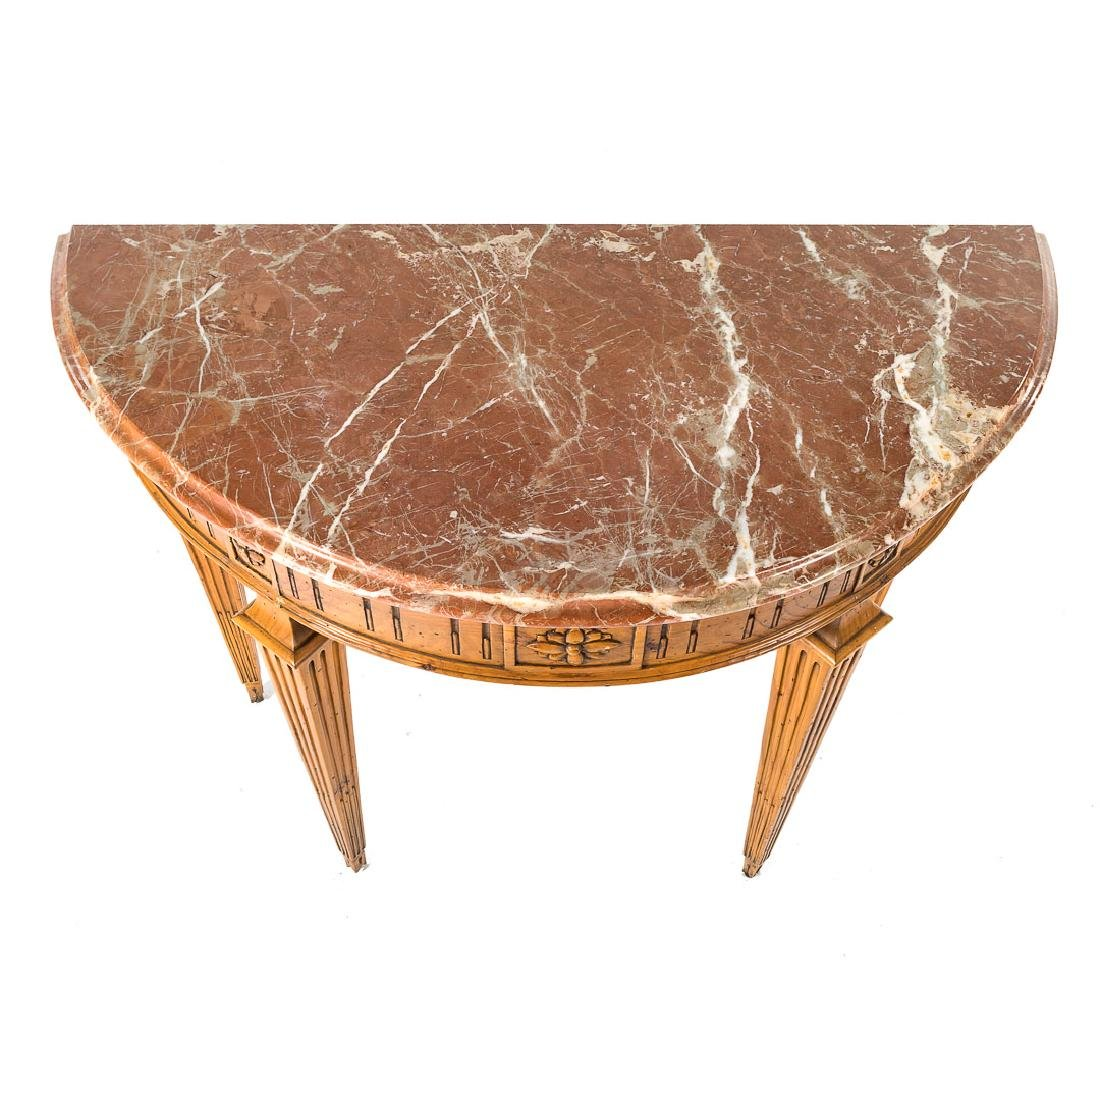 Louis XVI style pine marble top console table, - 4